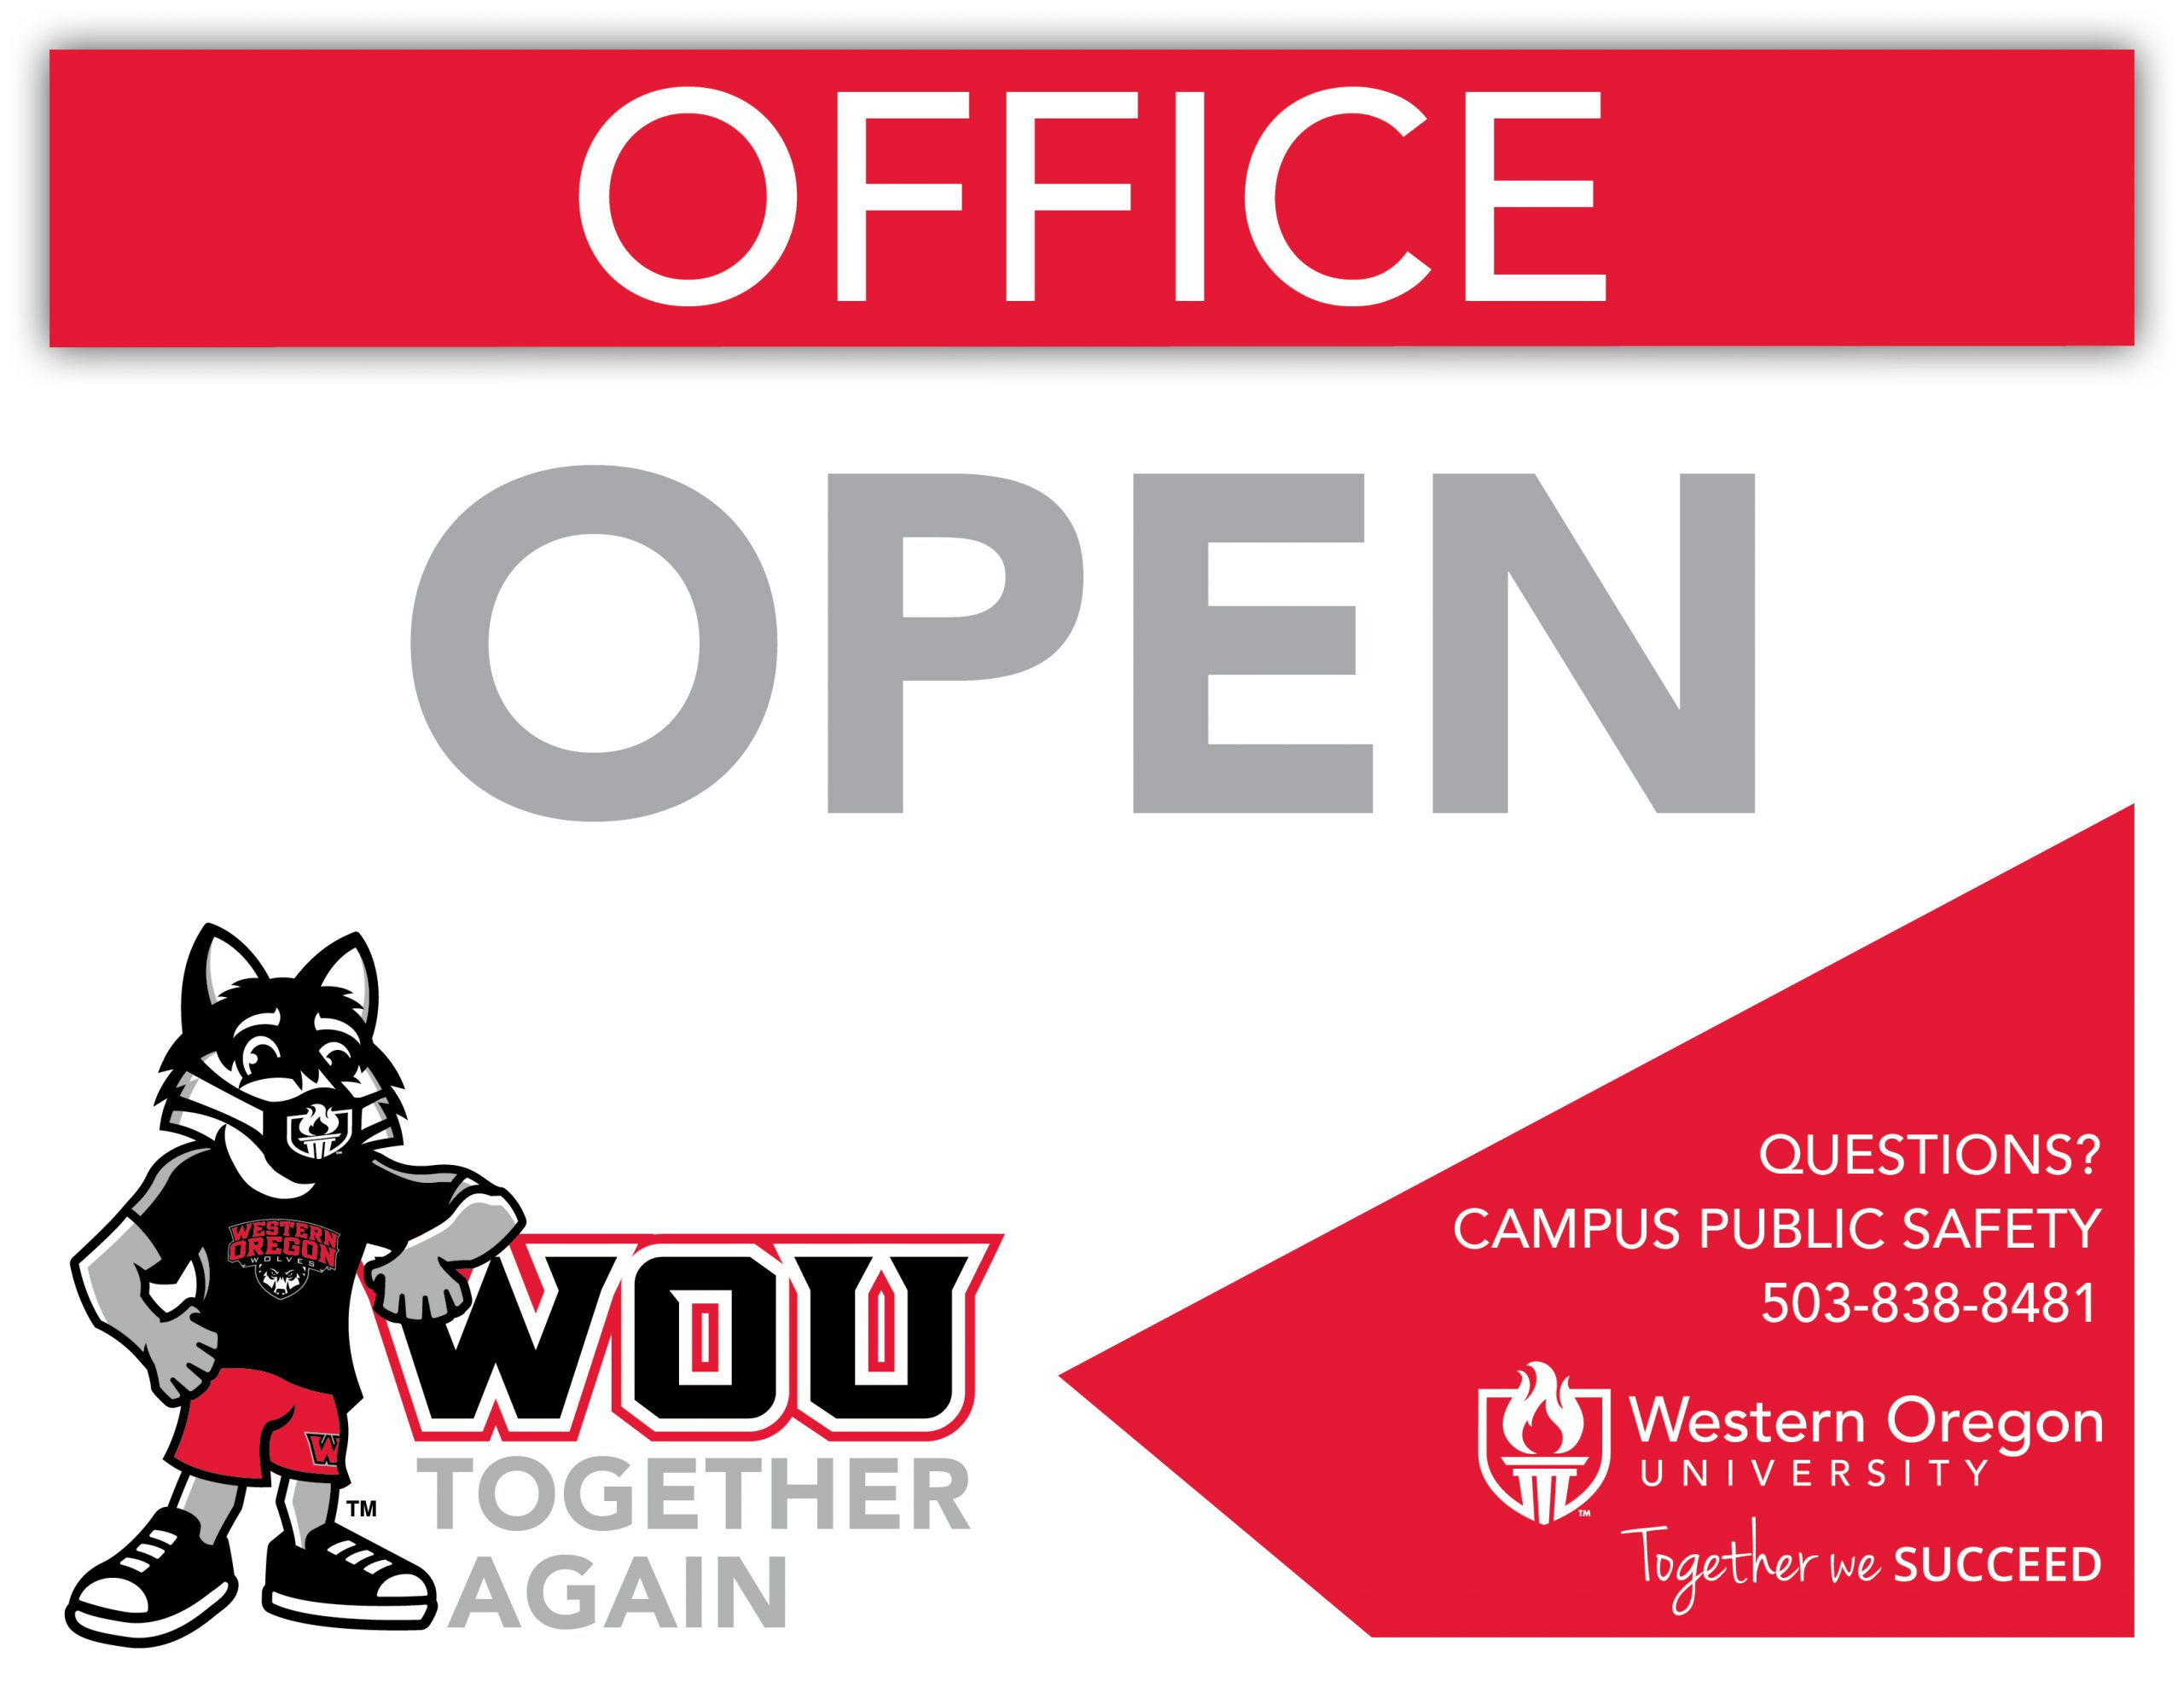 WOU Together Again, Office Open